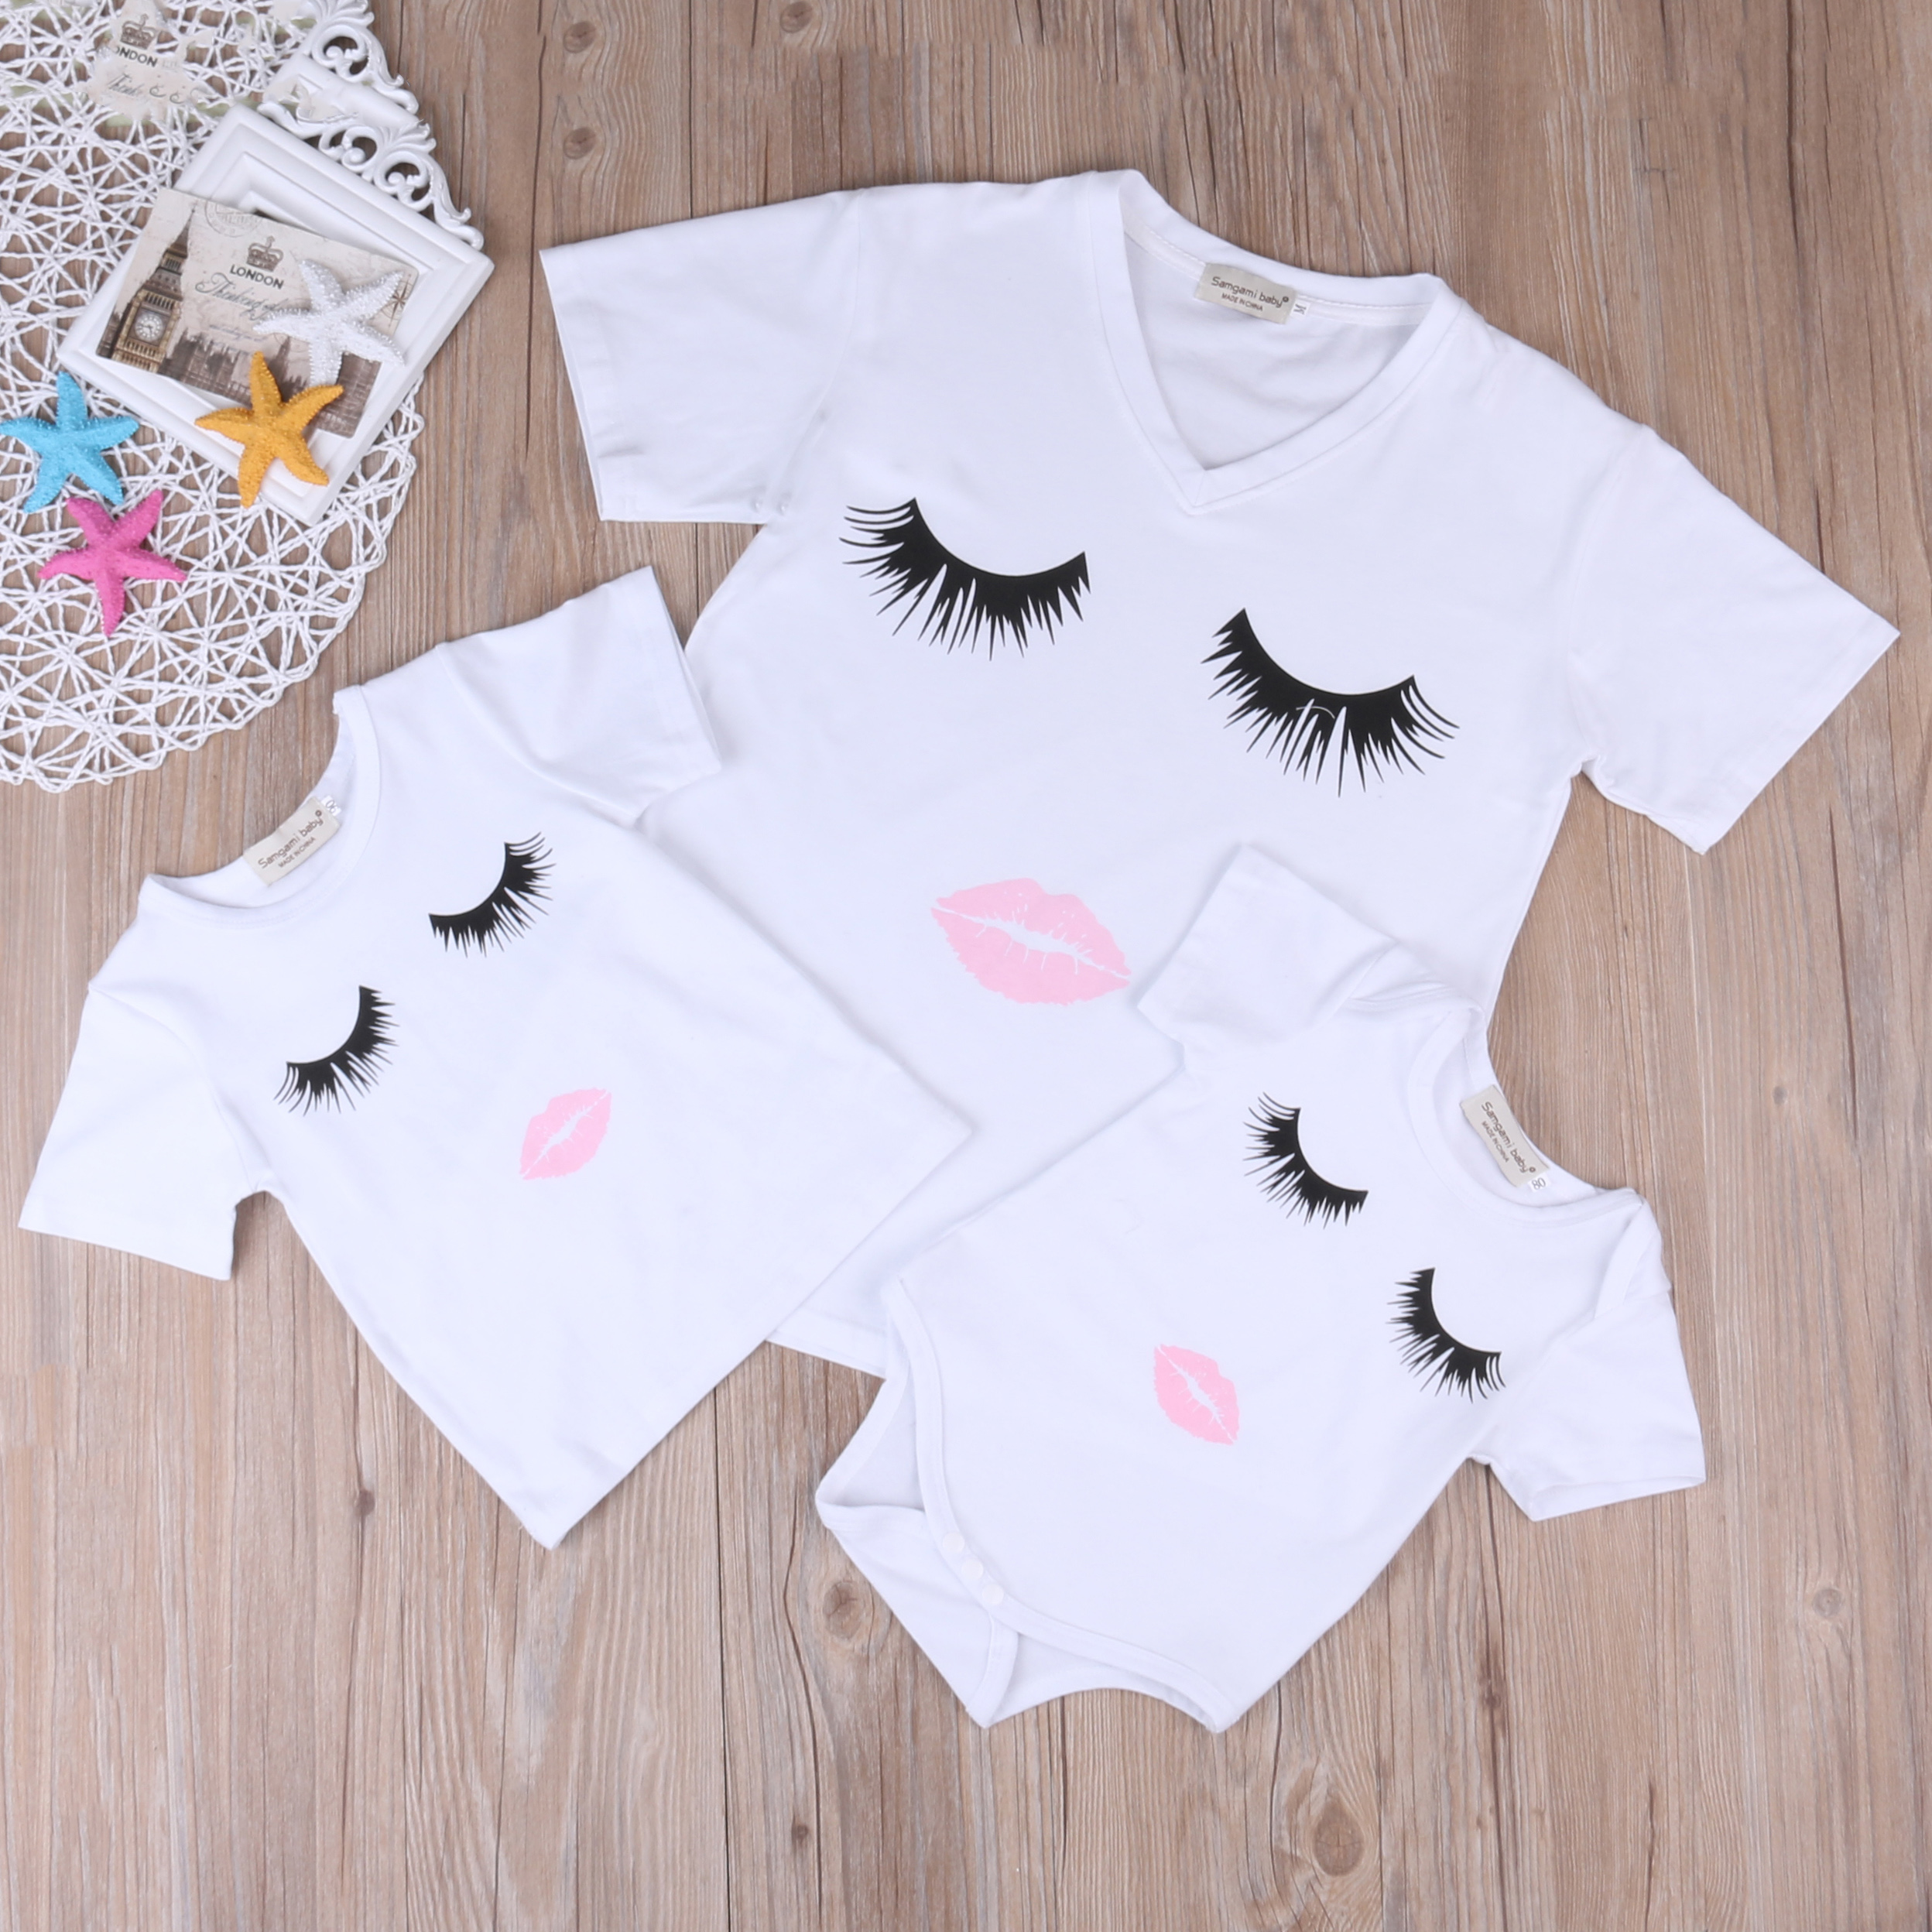 Famliy Matching Newborn Infant Kids Baby Girl Romper Eyelashes lips